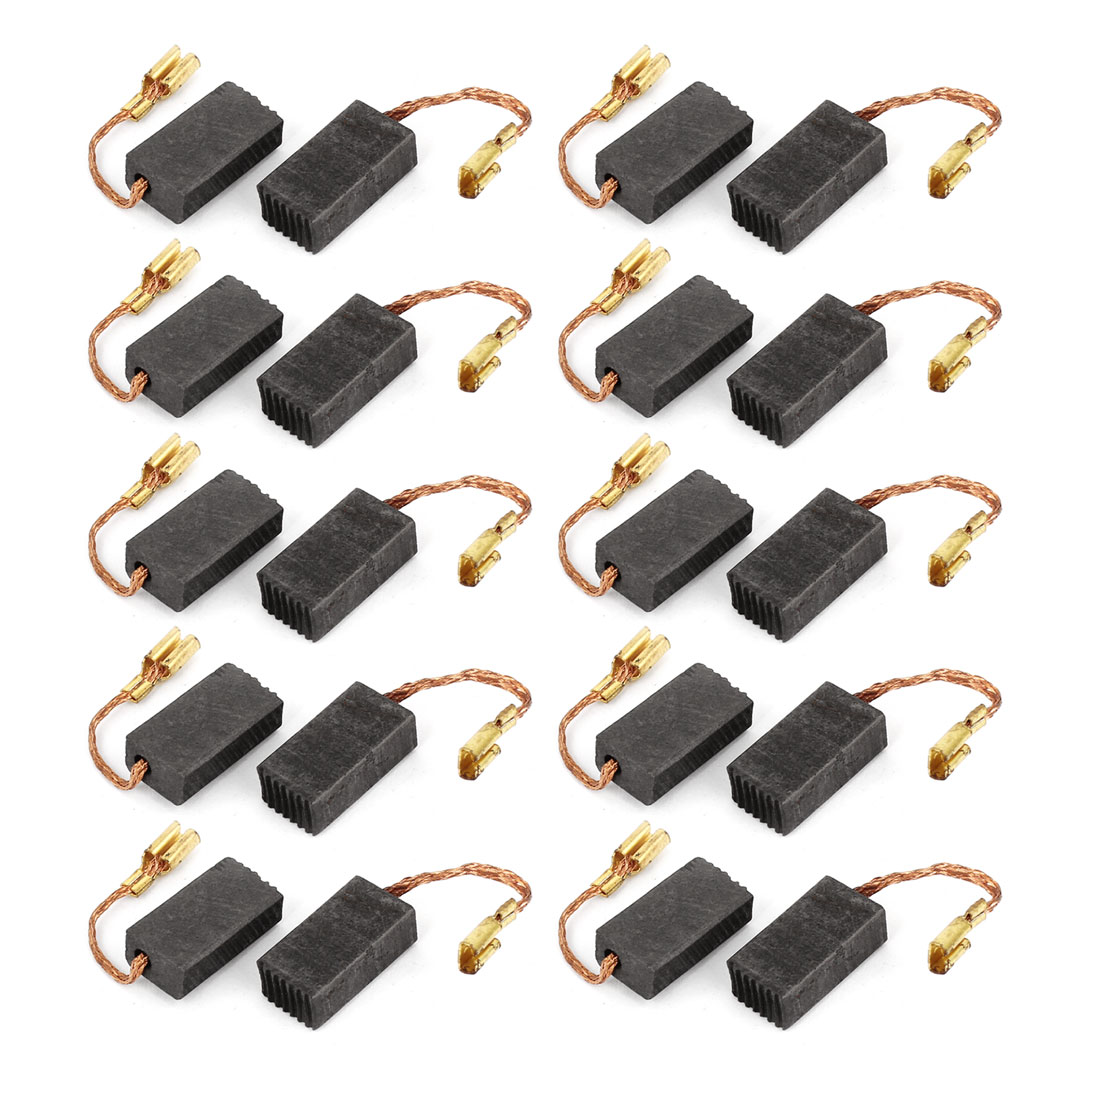 20 Pcs Spare Part Spring Type Electric Drill Motor 15mm x 8mm x 5mm Carbon Brushes